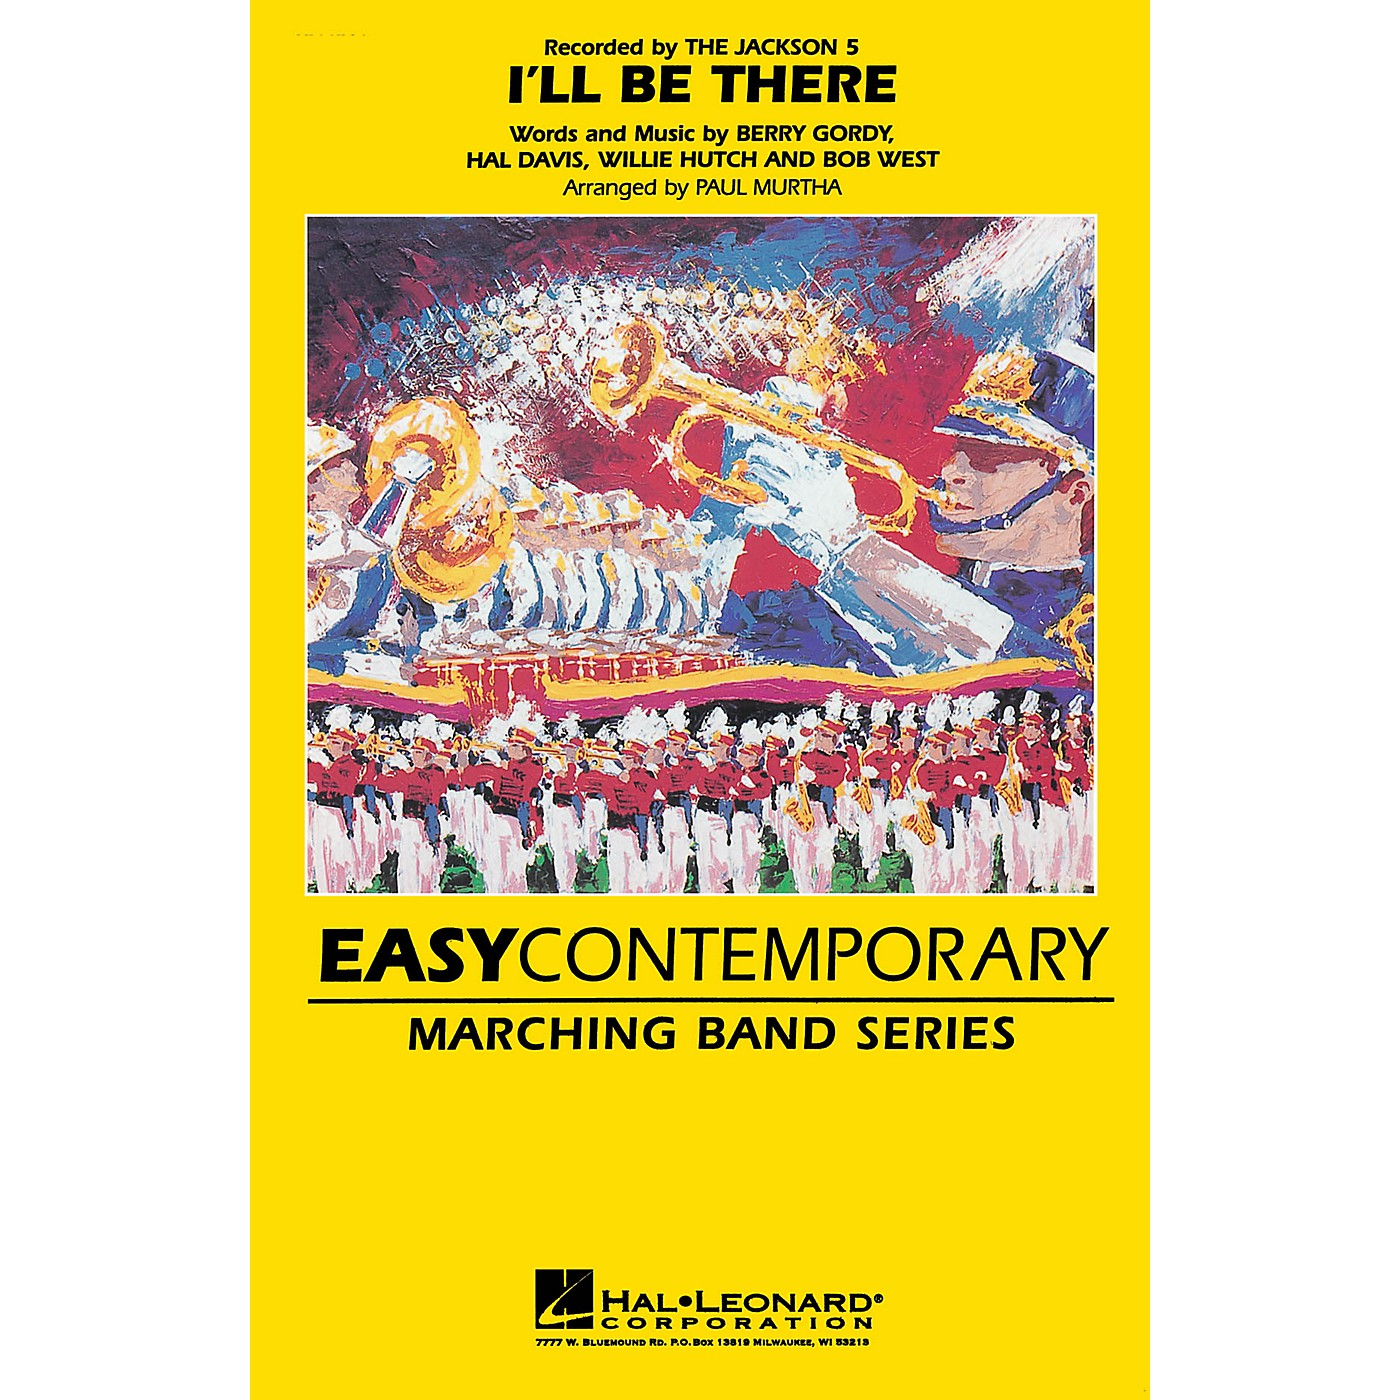 Hal Leonard I'll Be There Marching Band Level 2-3 by The Jackson 5 Arranged by Paul Murtha thumbnail